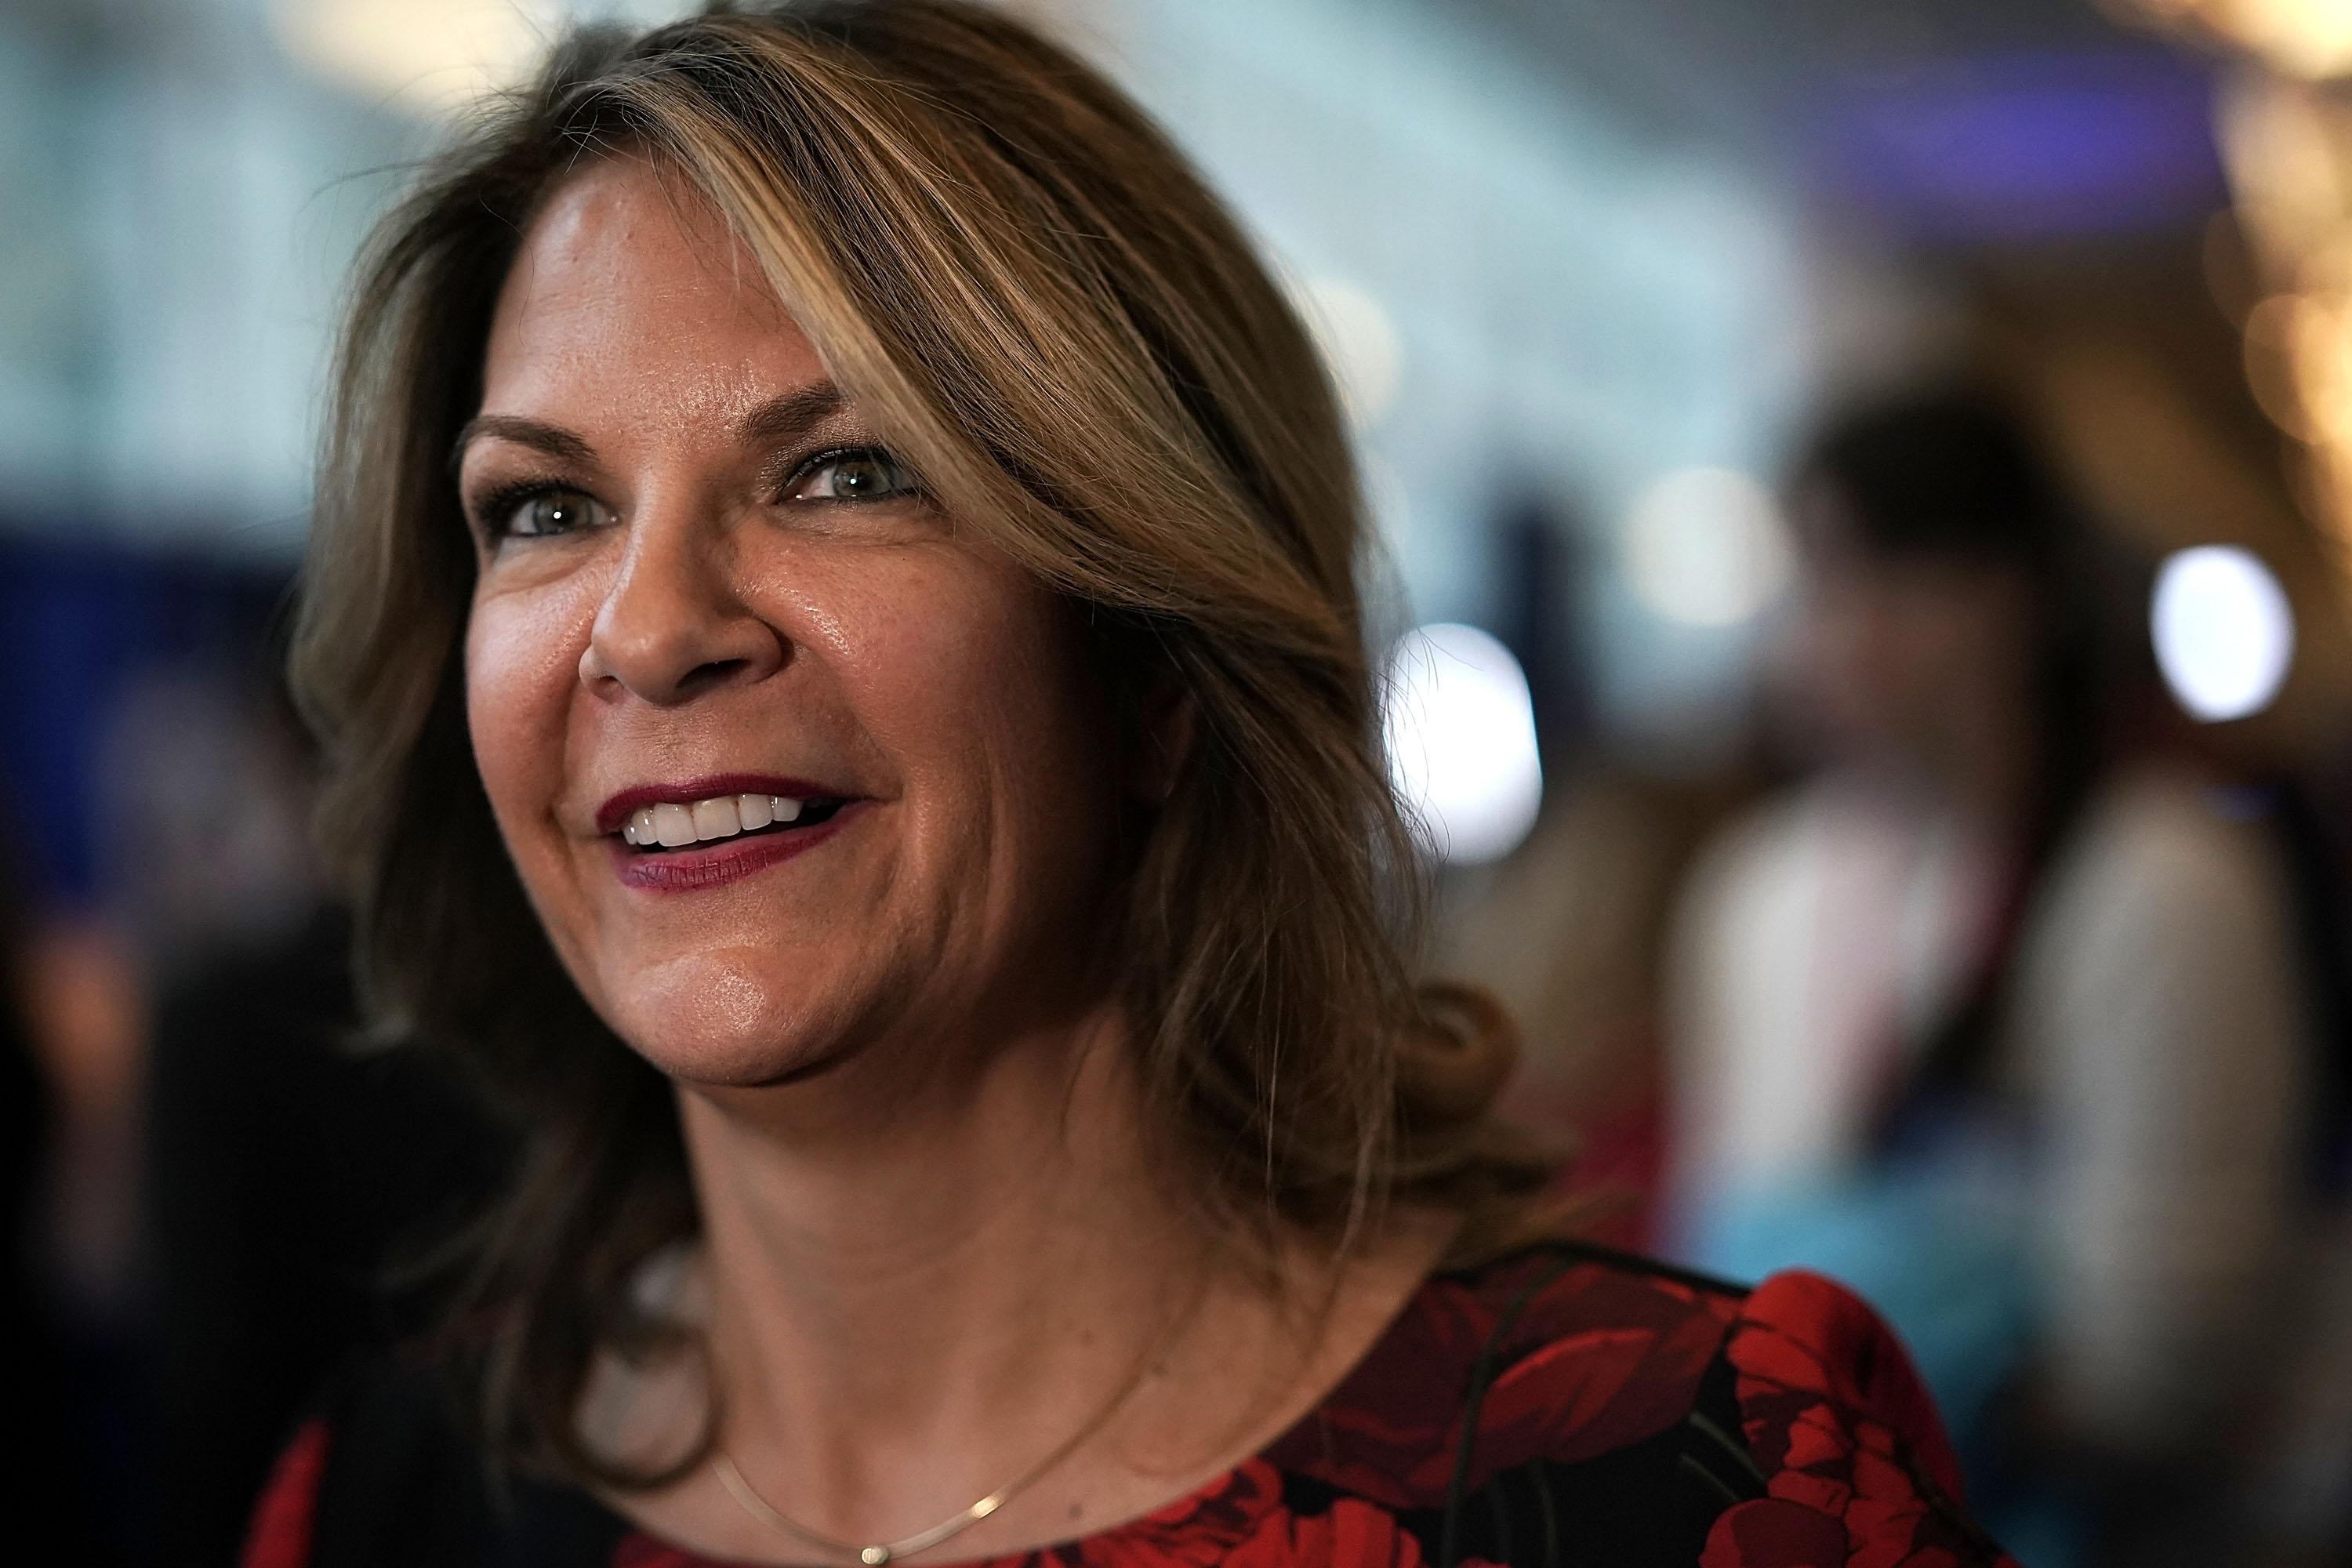 Republican Senate candidate for Arizona Kelli Ward attends CPAC 2018 February 22, 2018 in National Harbor, Maryland.